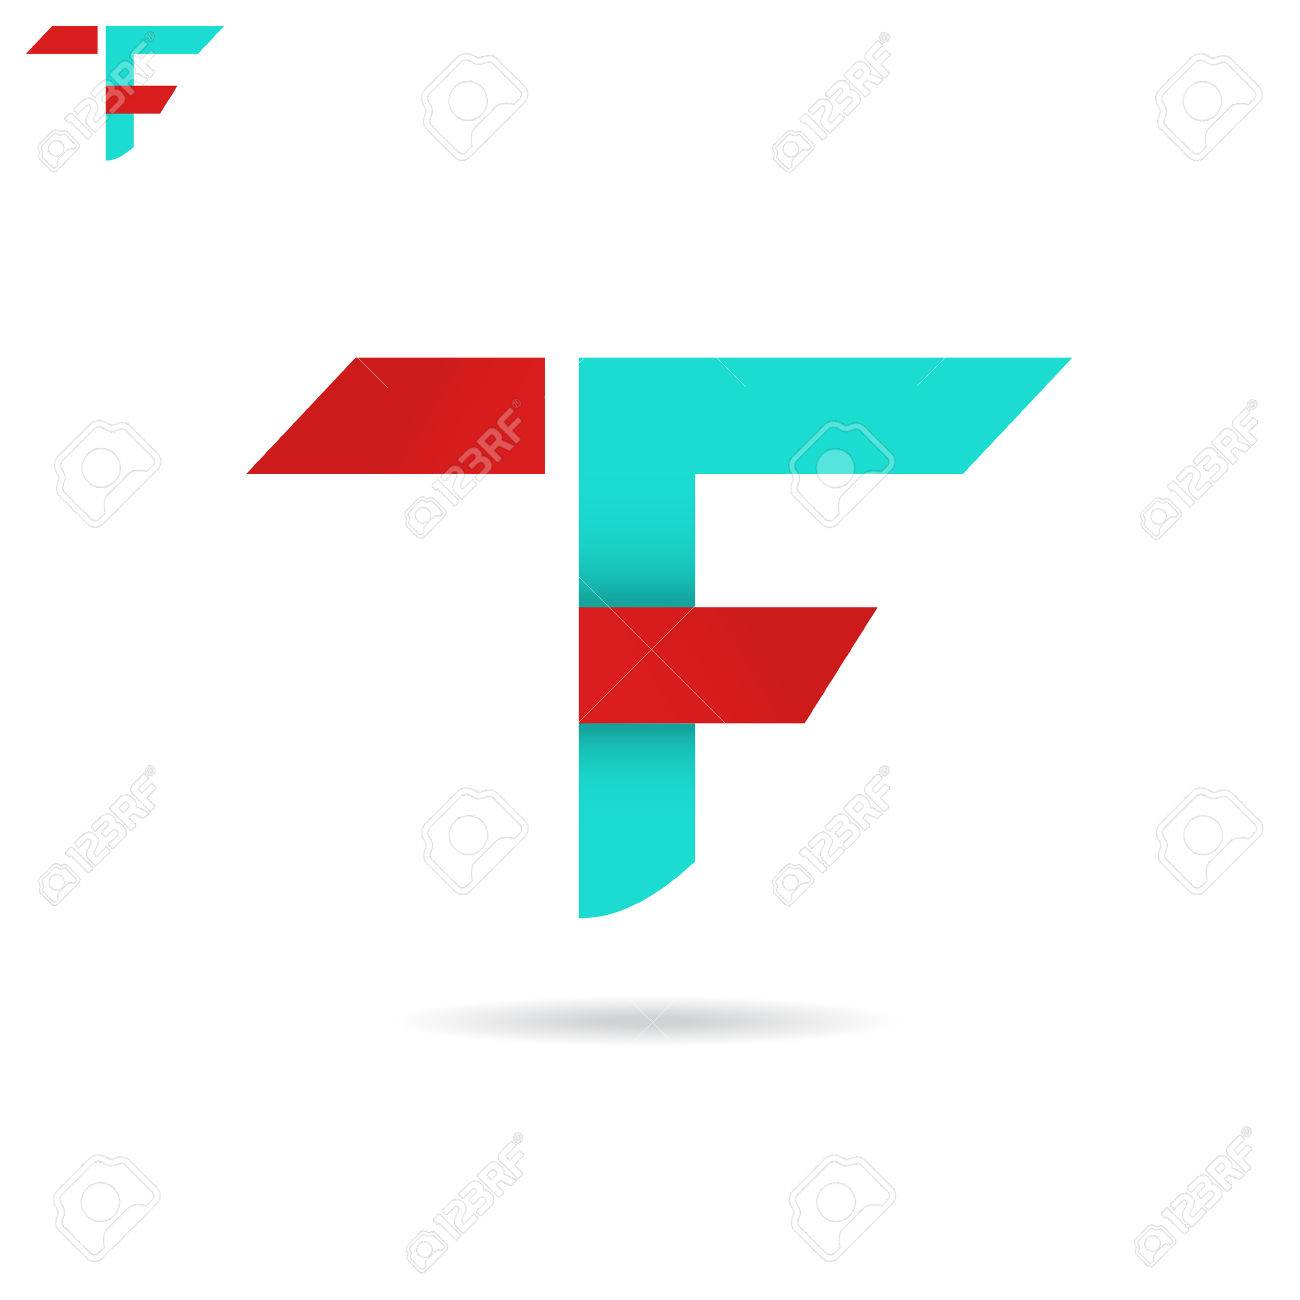 t and f letter